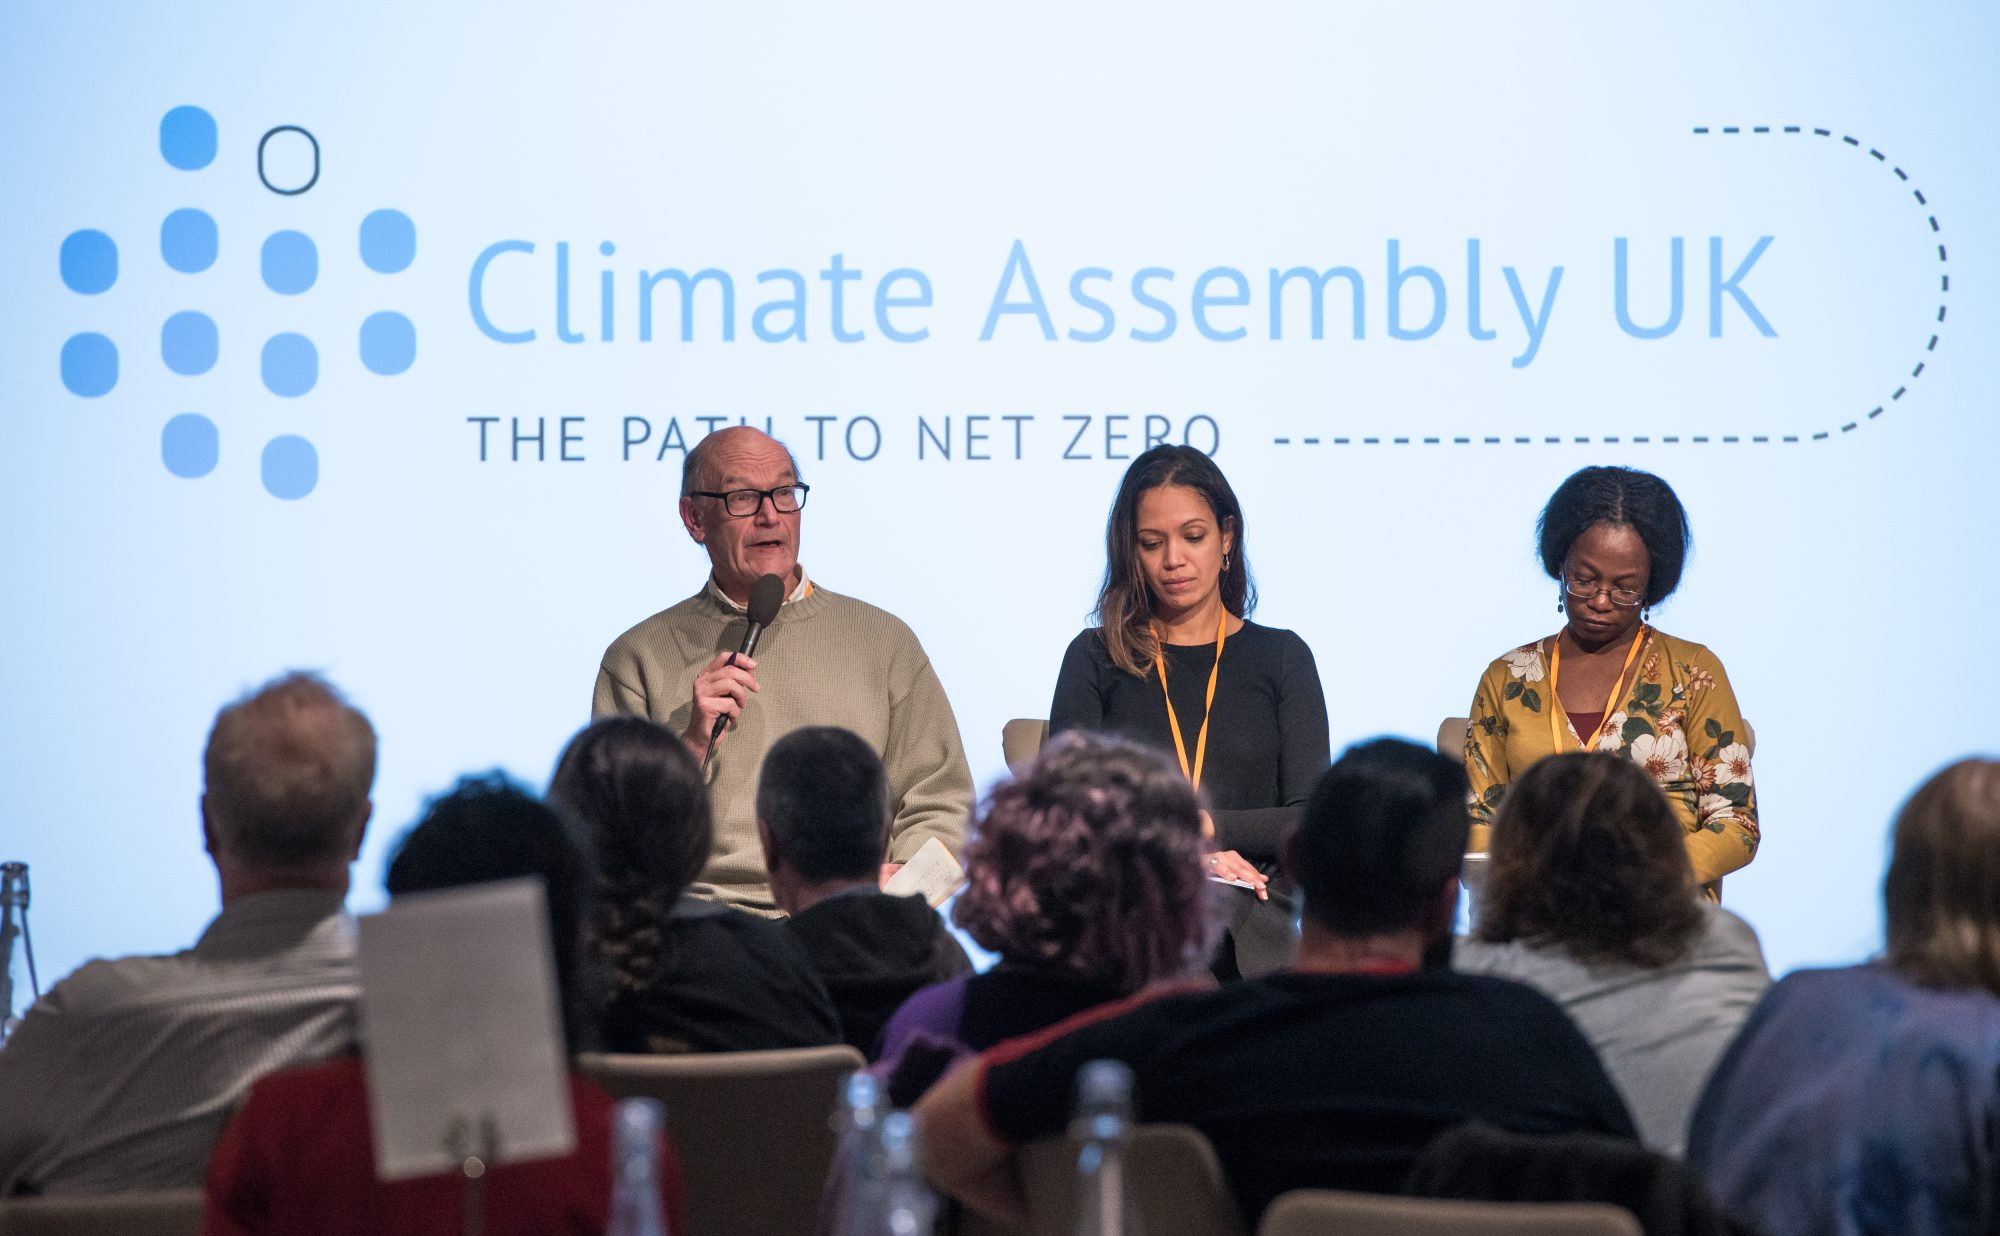 Citizens' Climate Assembly meets for first time